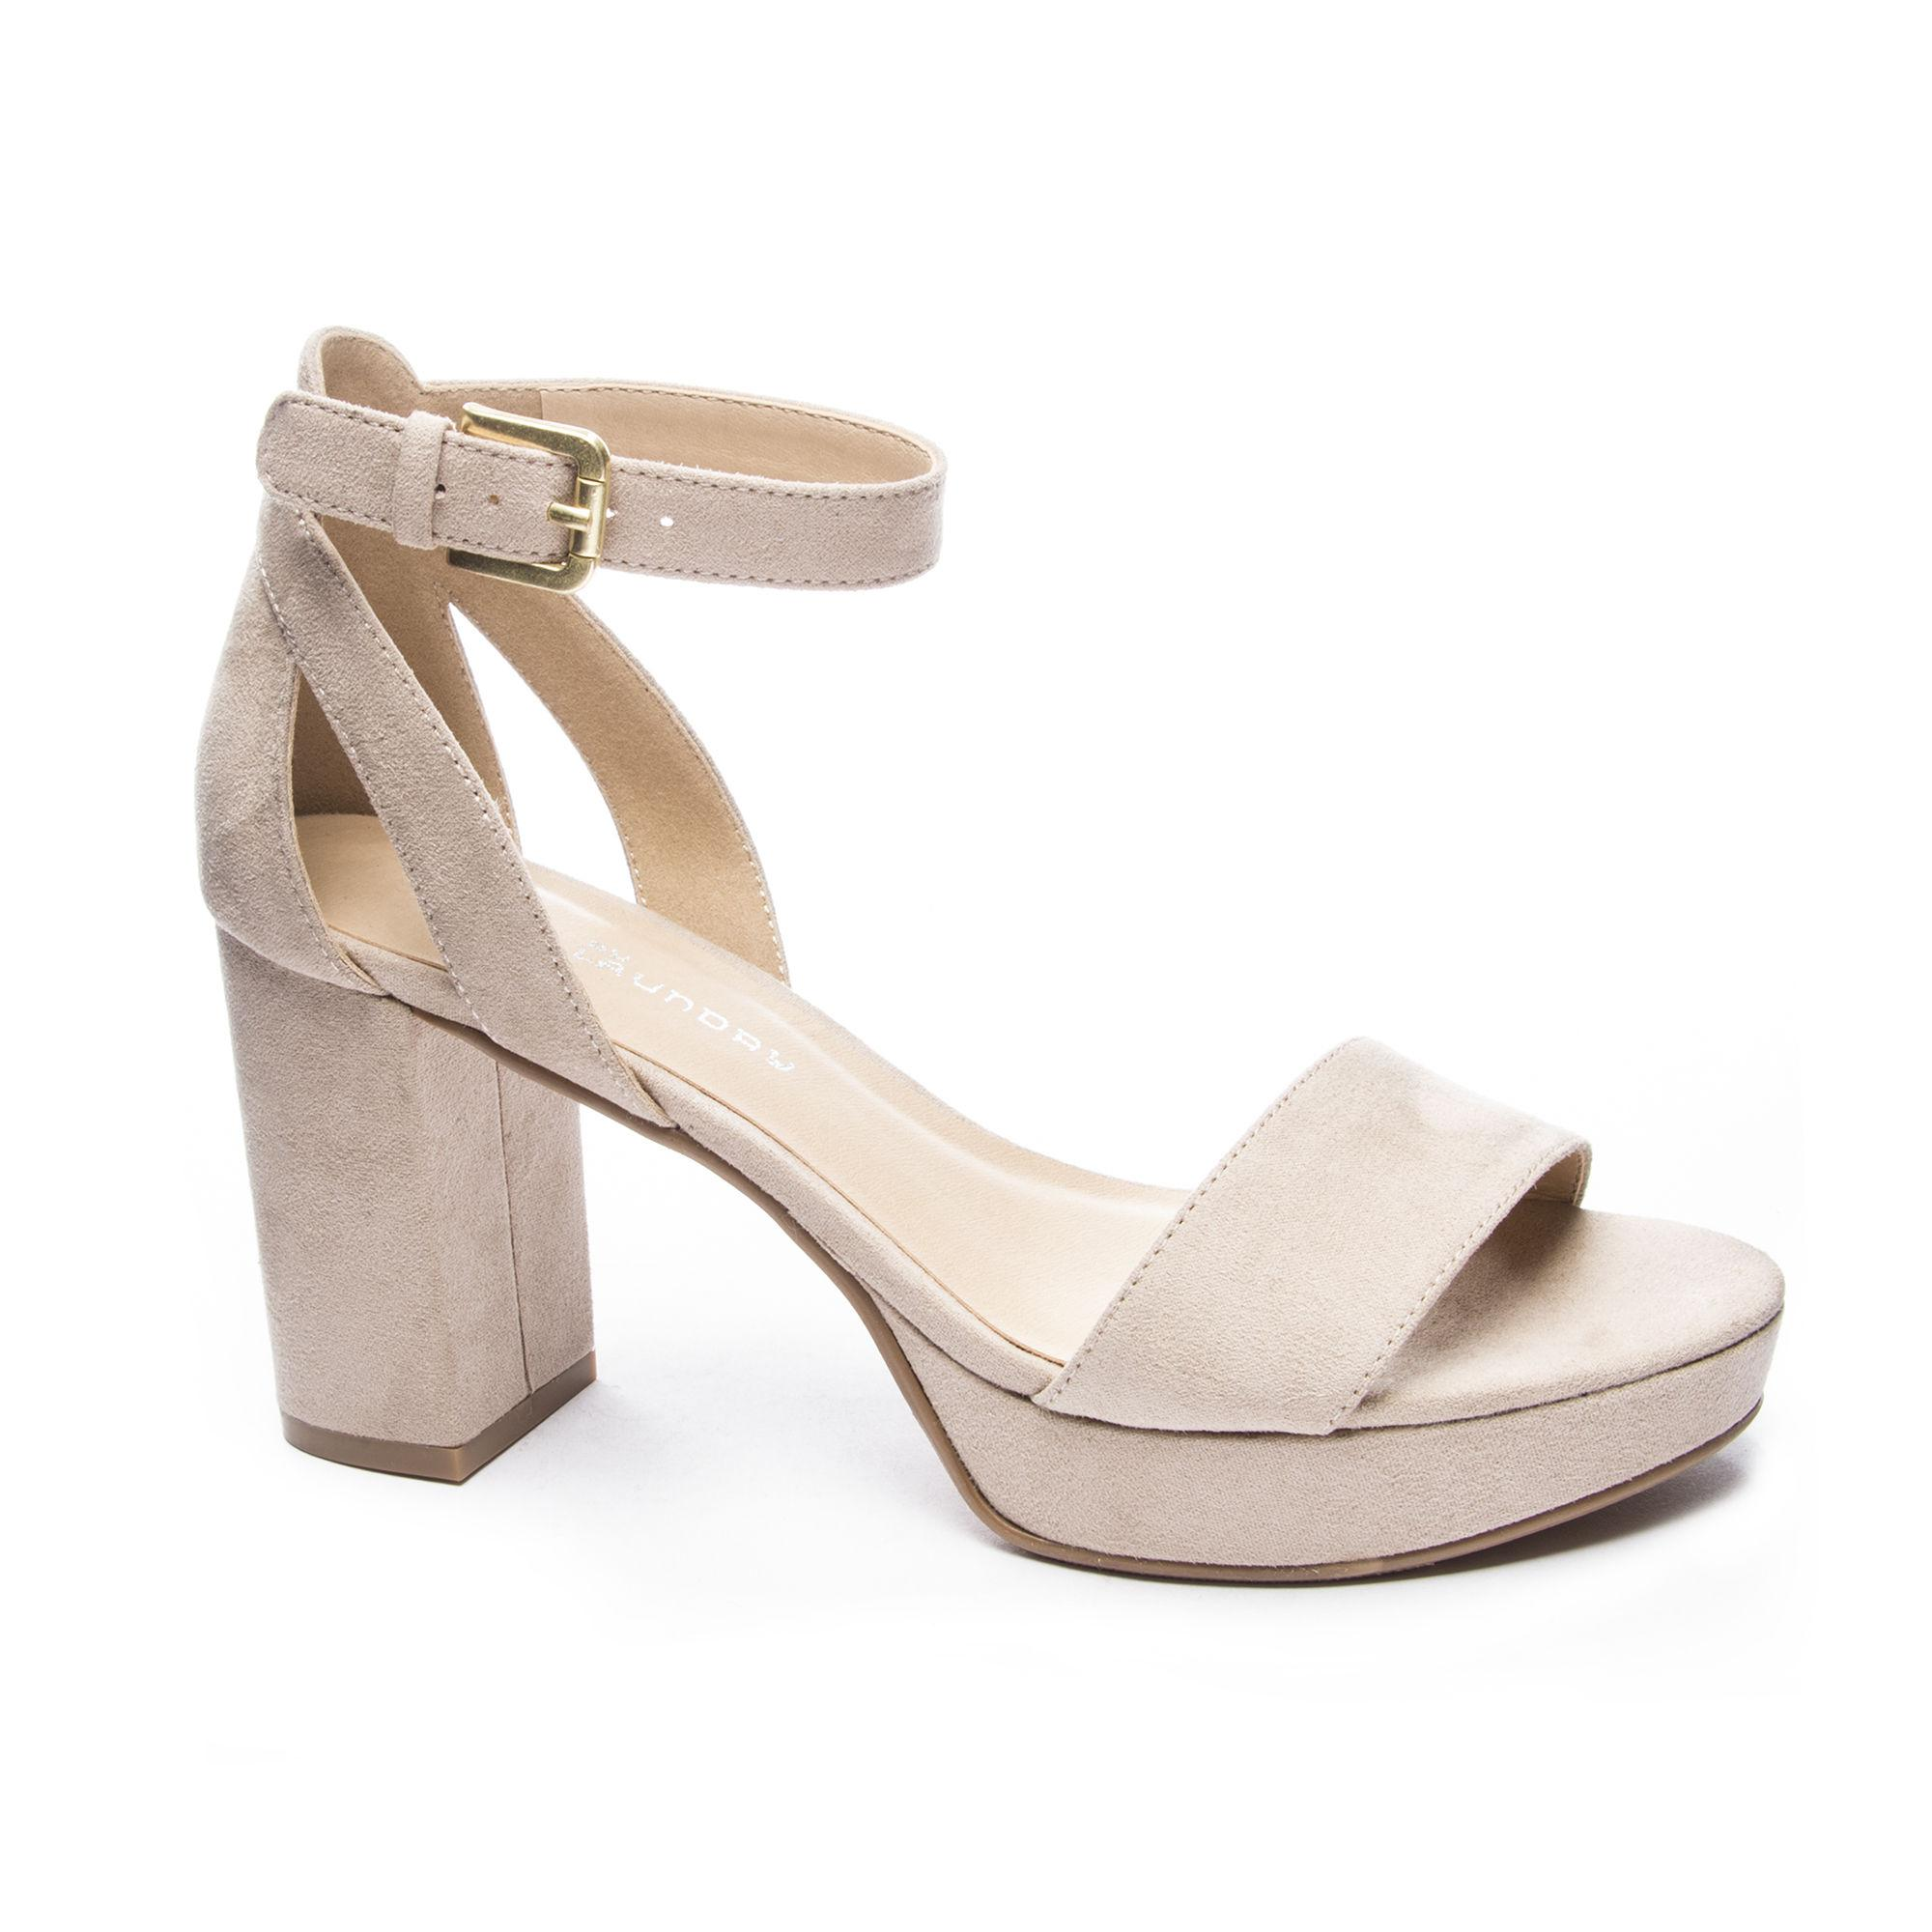 7aeb282c76f Lyst - Chinese Laundry Go On Block Heel Sandal in Natural